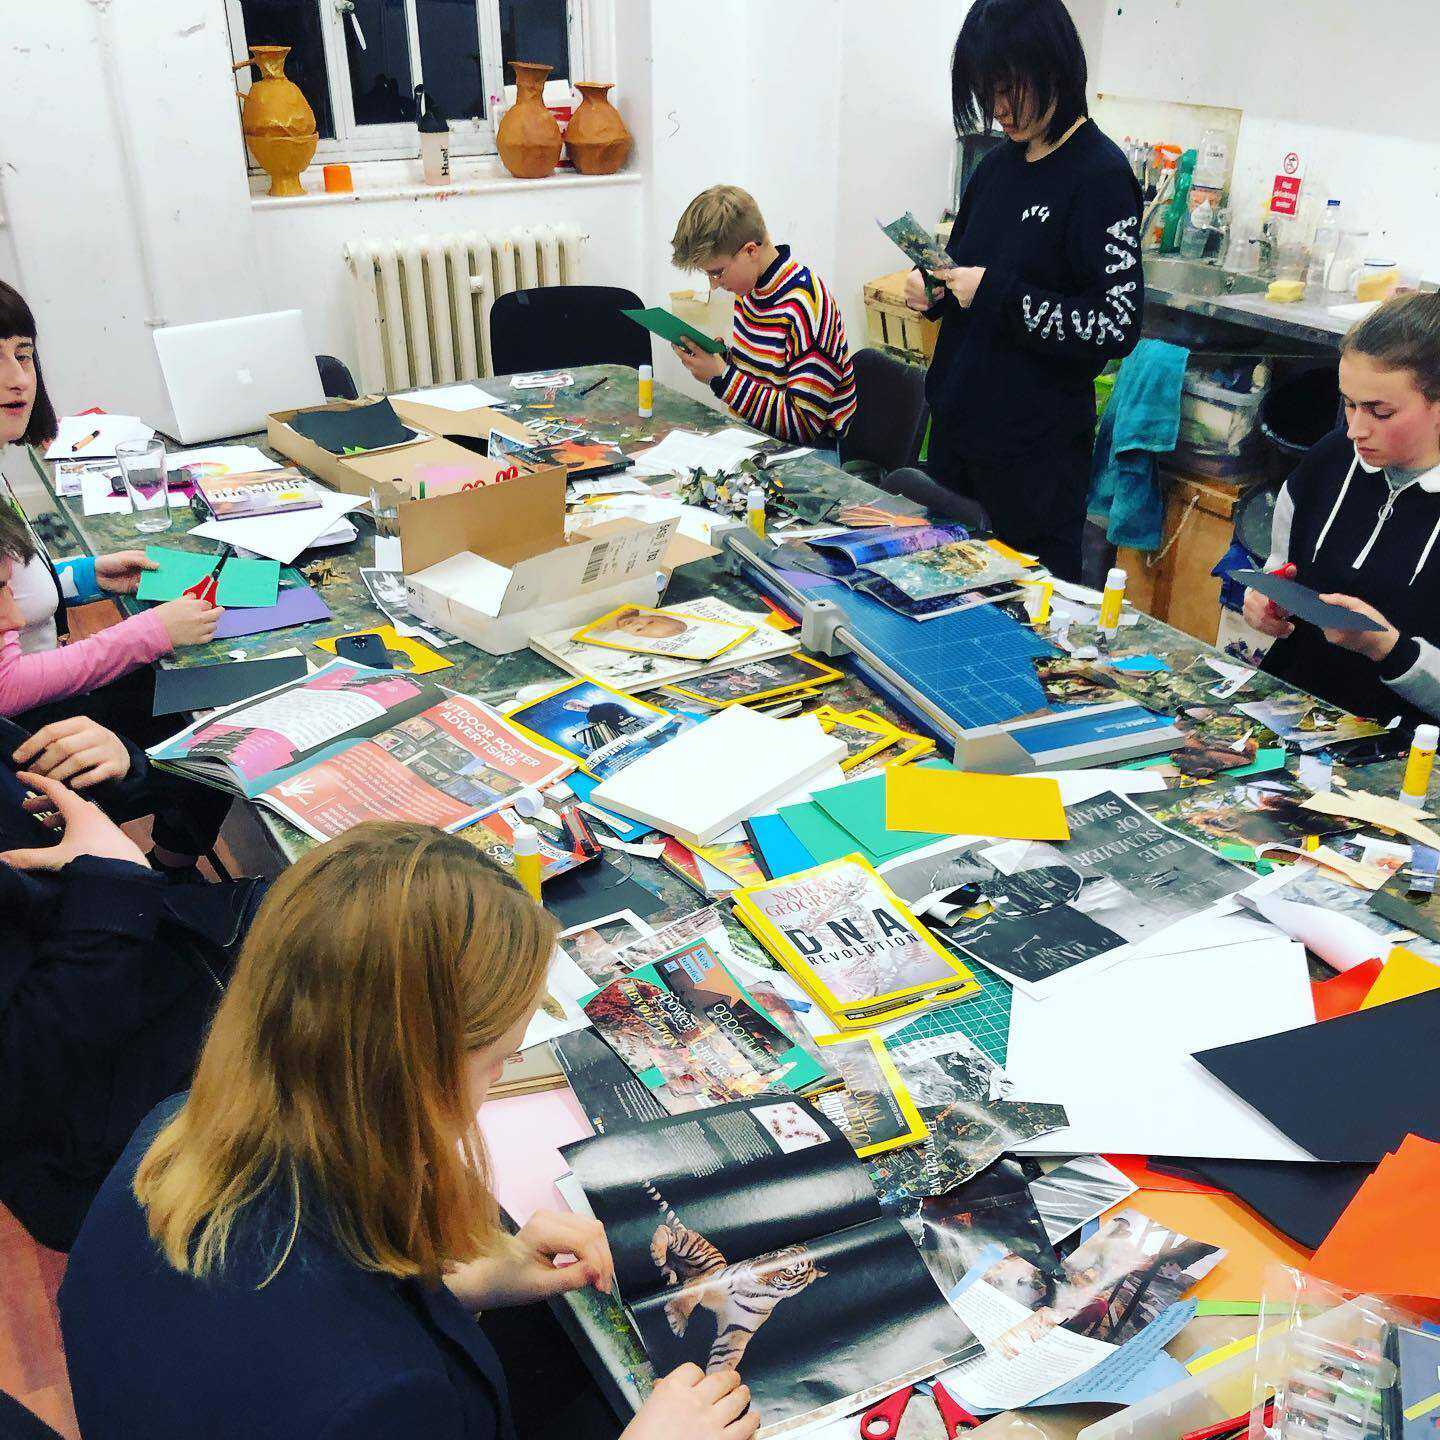 Several young people sitting around a table cutting up magazines and flyers to make a collage